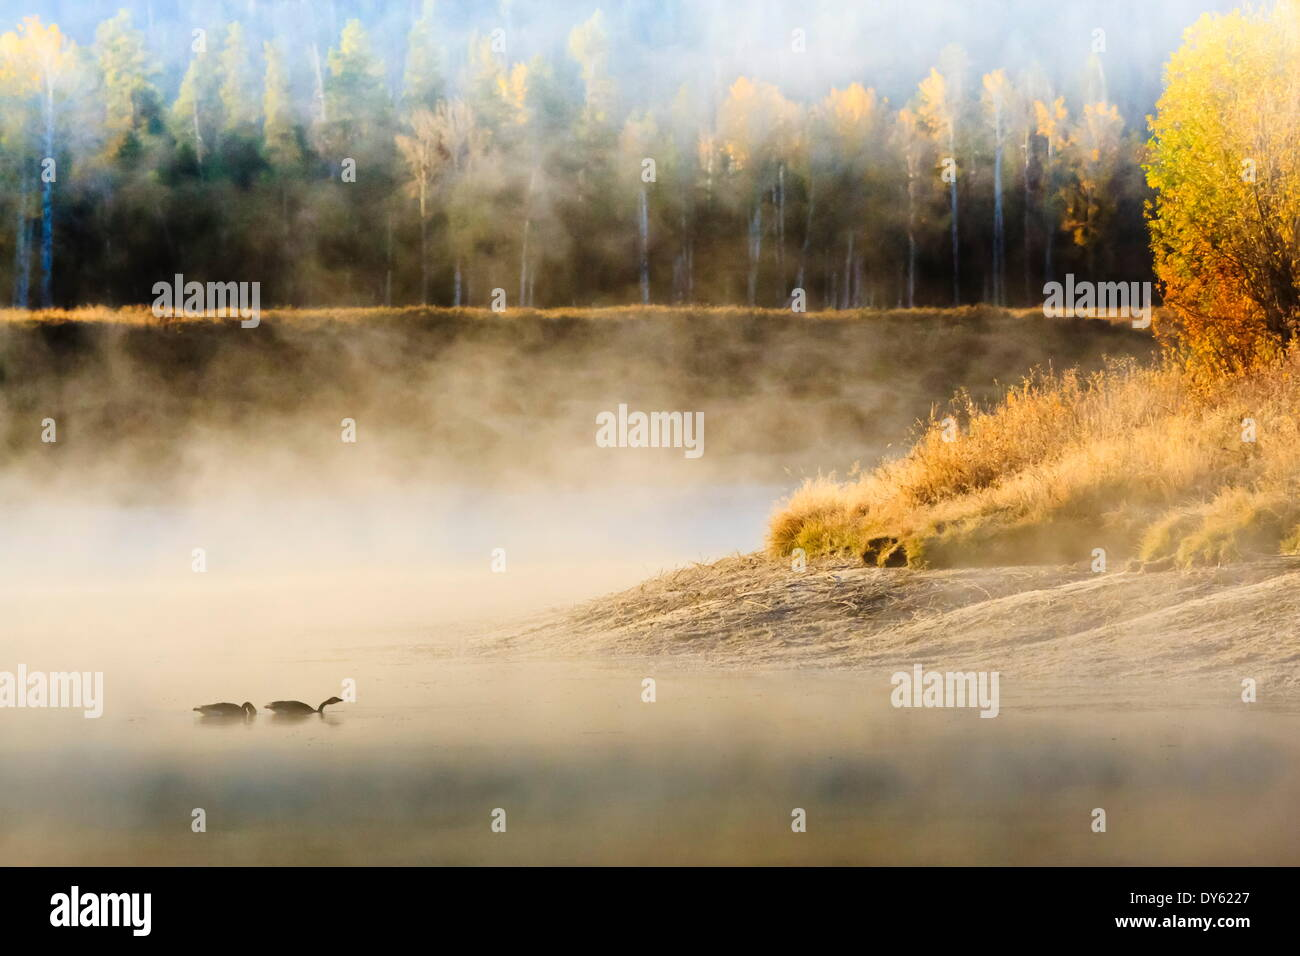 Wildfowl on Snake River surrounded by a cold dawn mist, autumn (fall), Grand Teton National Park, Wyoming, USA - Stock Image